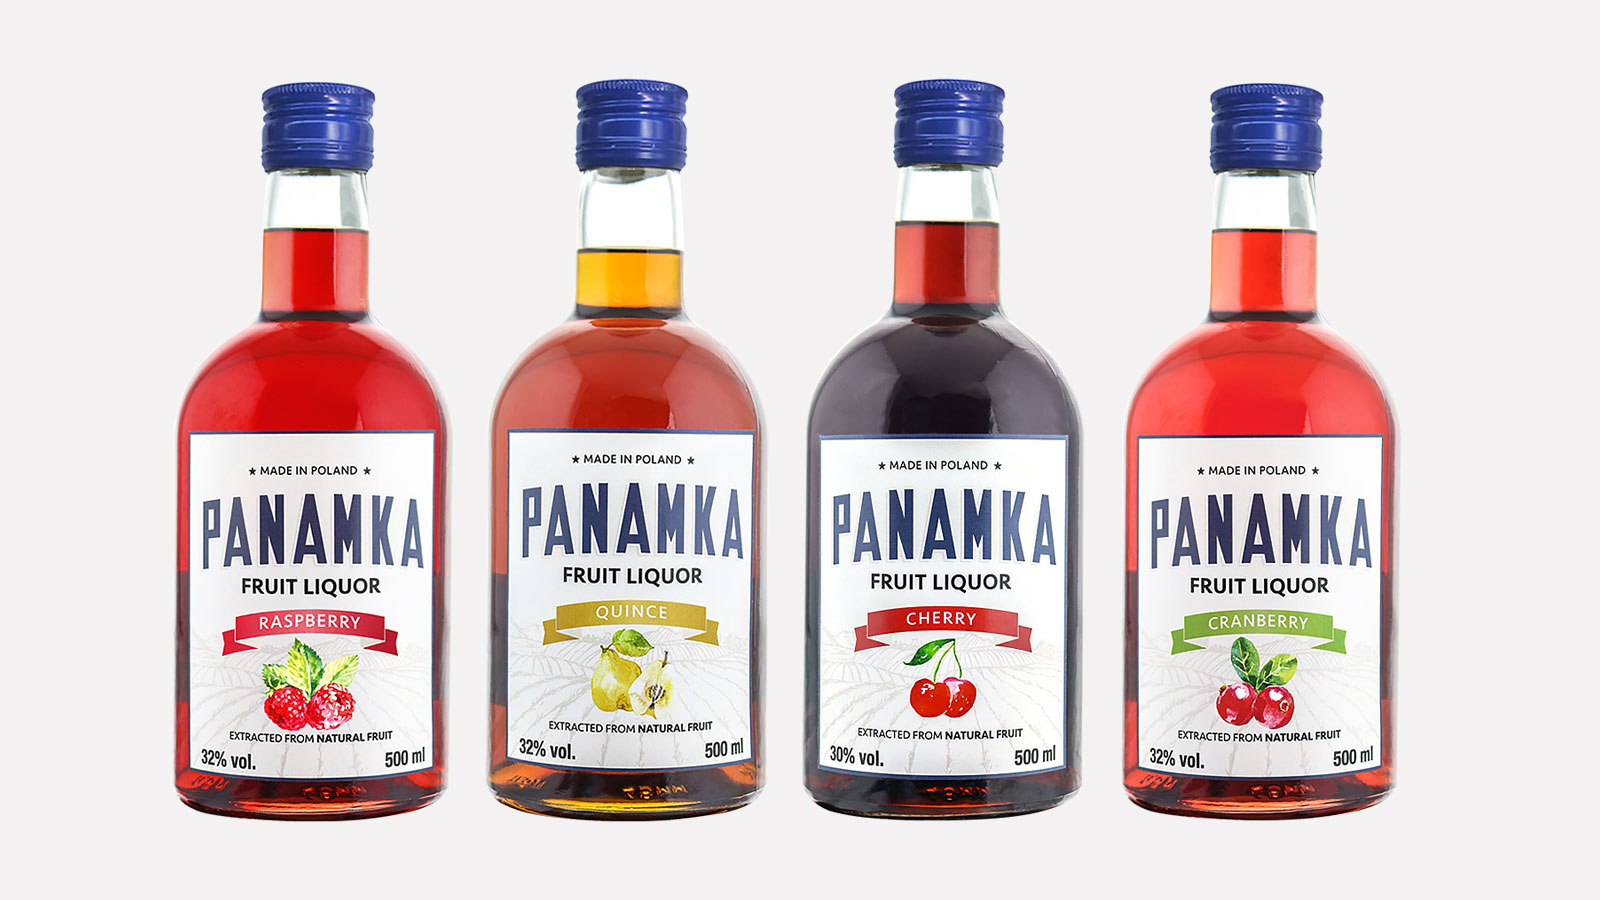 Panamka fruit liquor